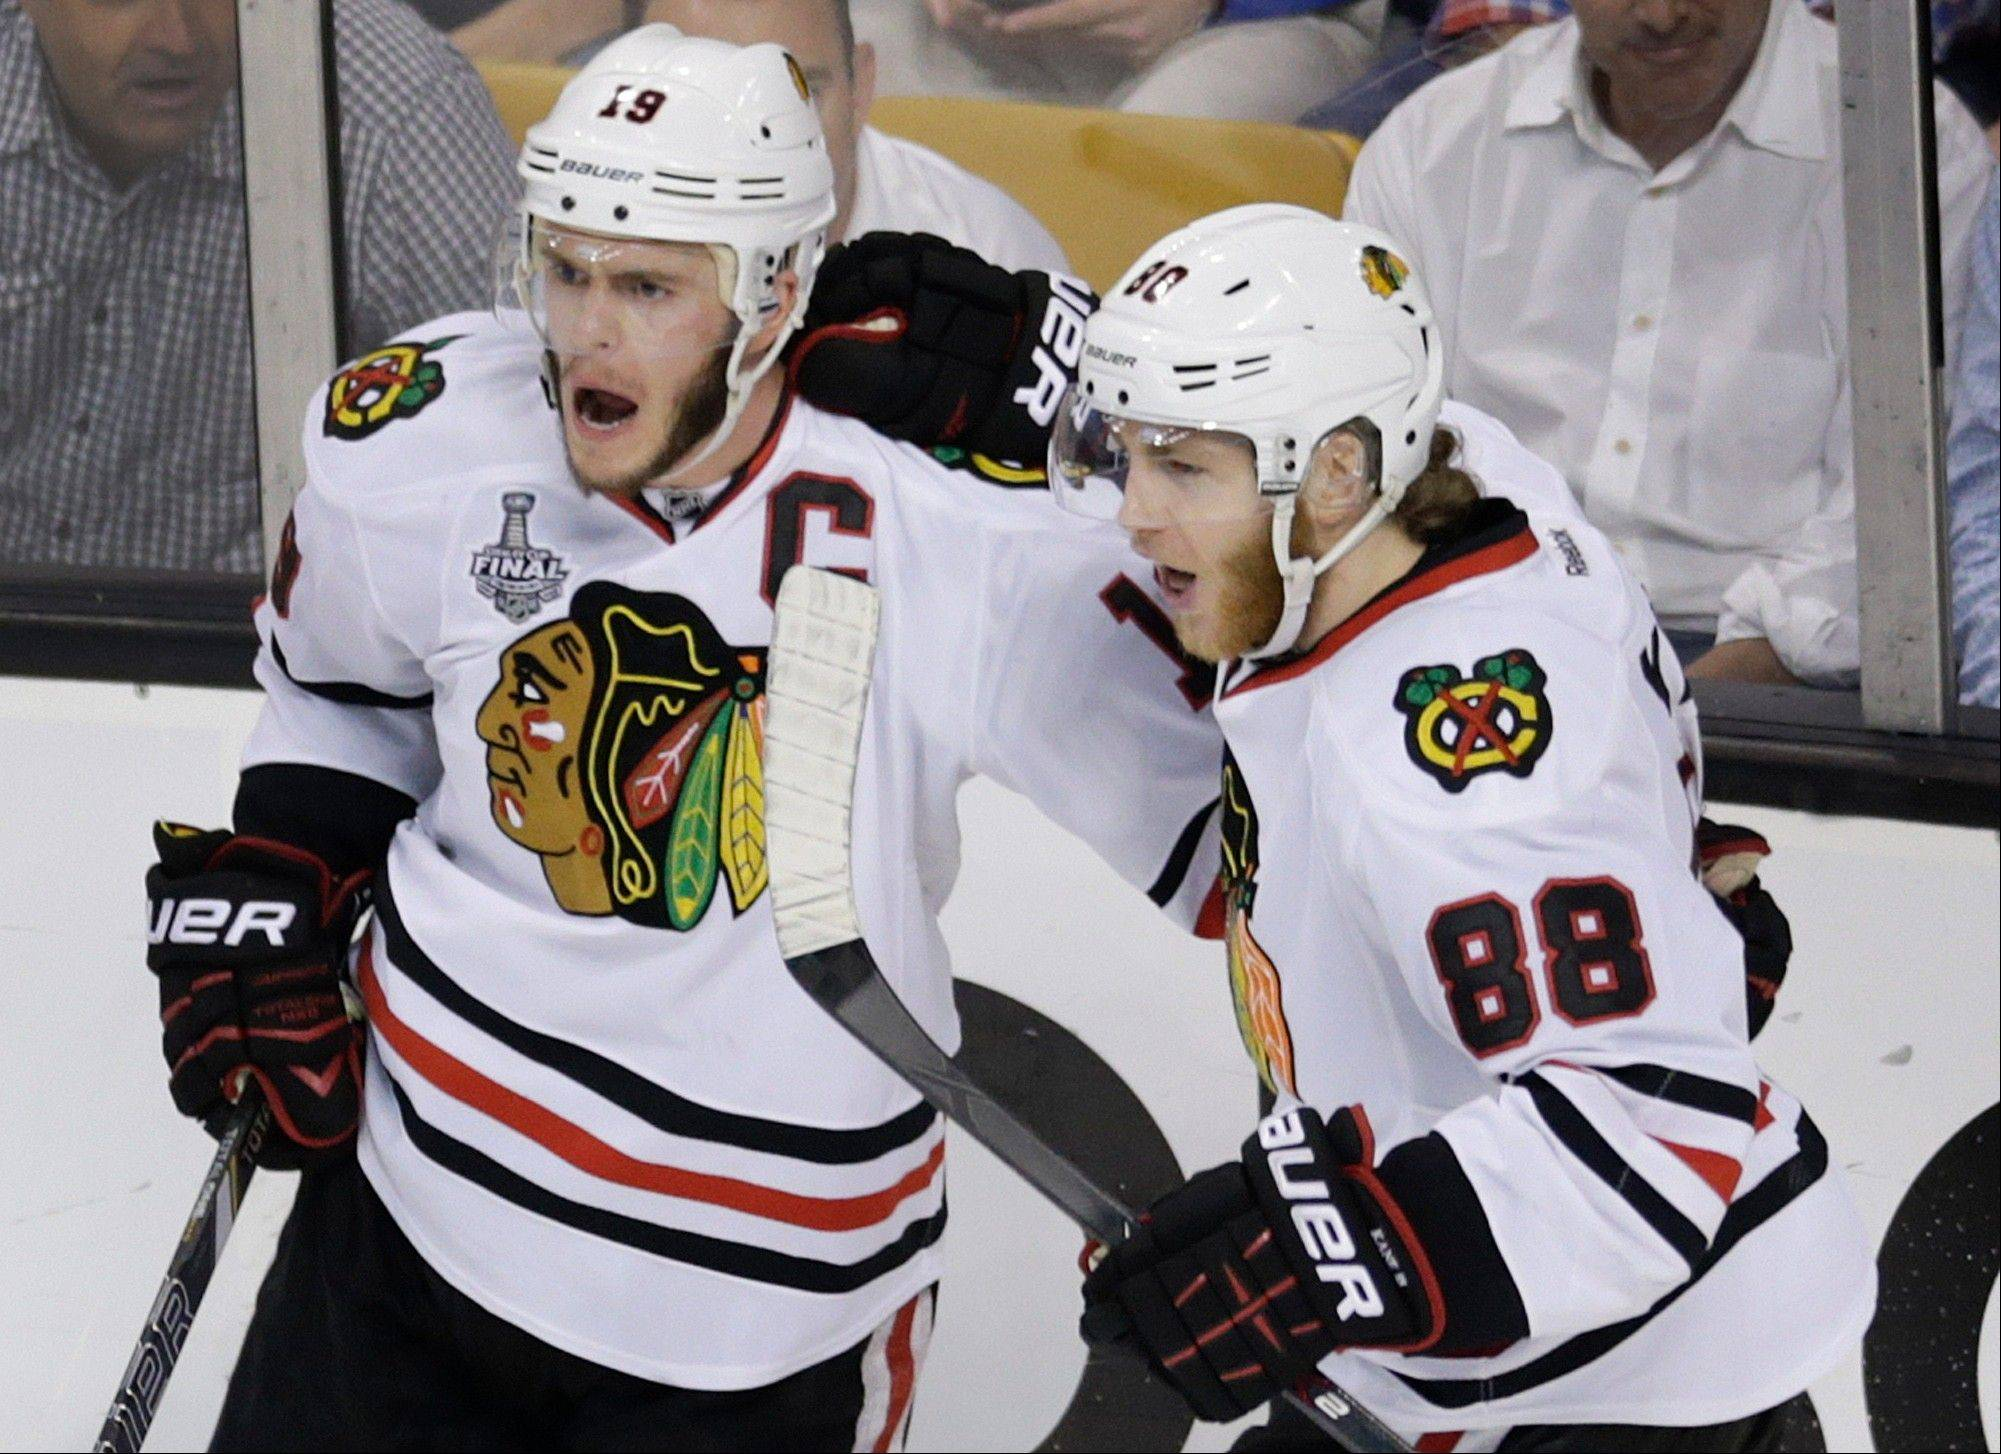 Blackhawks center Jonathan Toews celebrates his goal with winger Patrick Kane in Monday's second period.